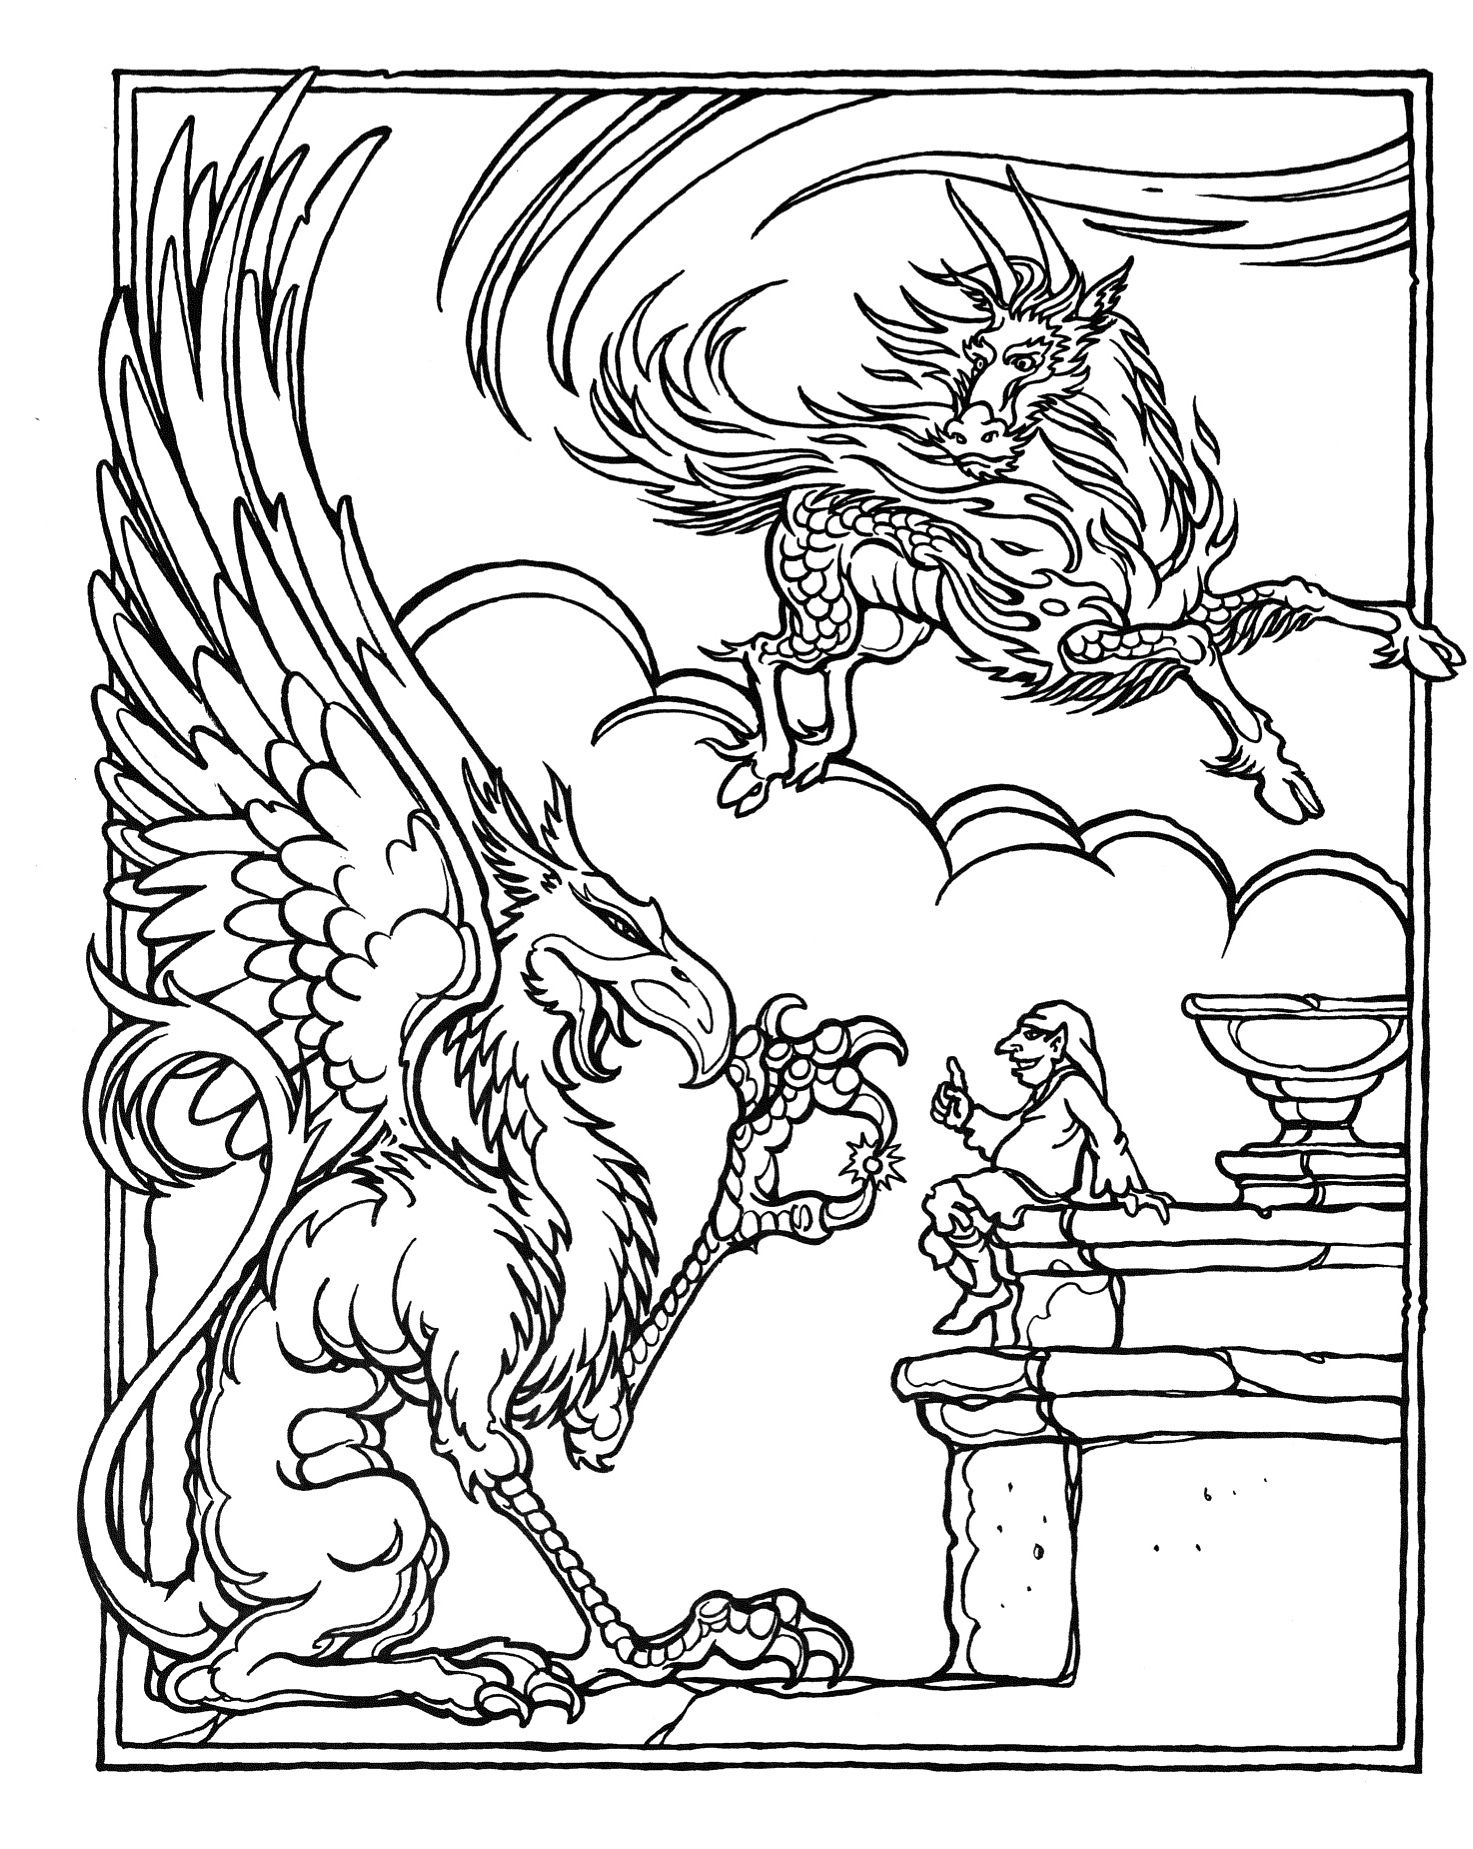 advanced free coloring pages - photo#24